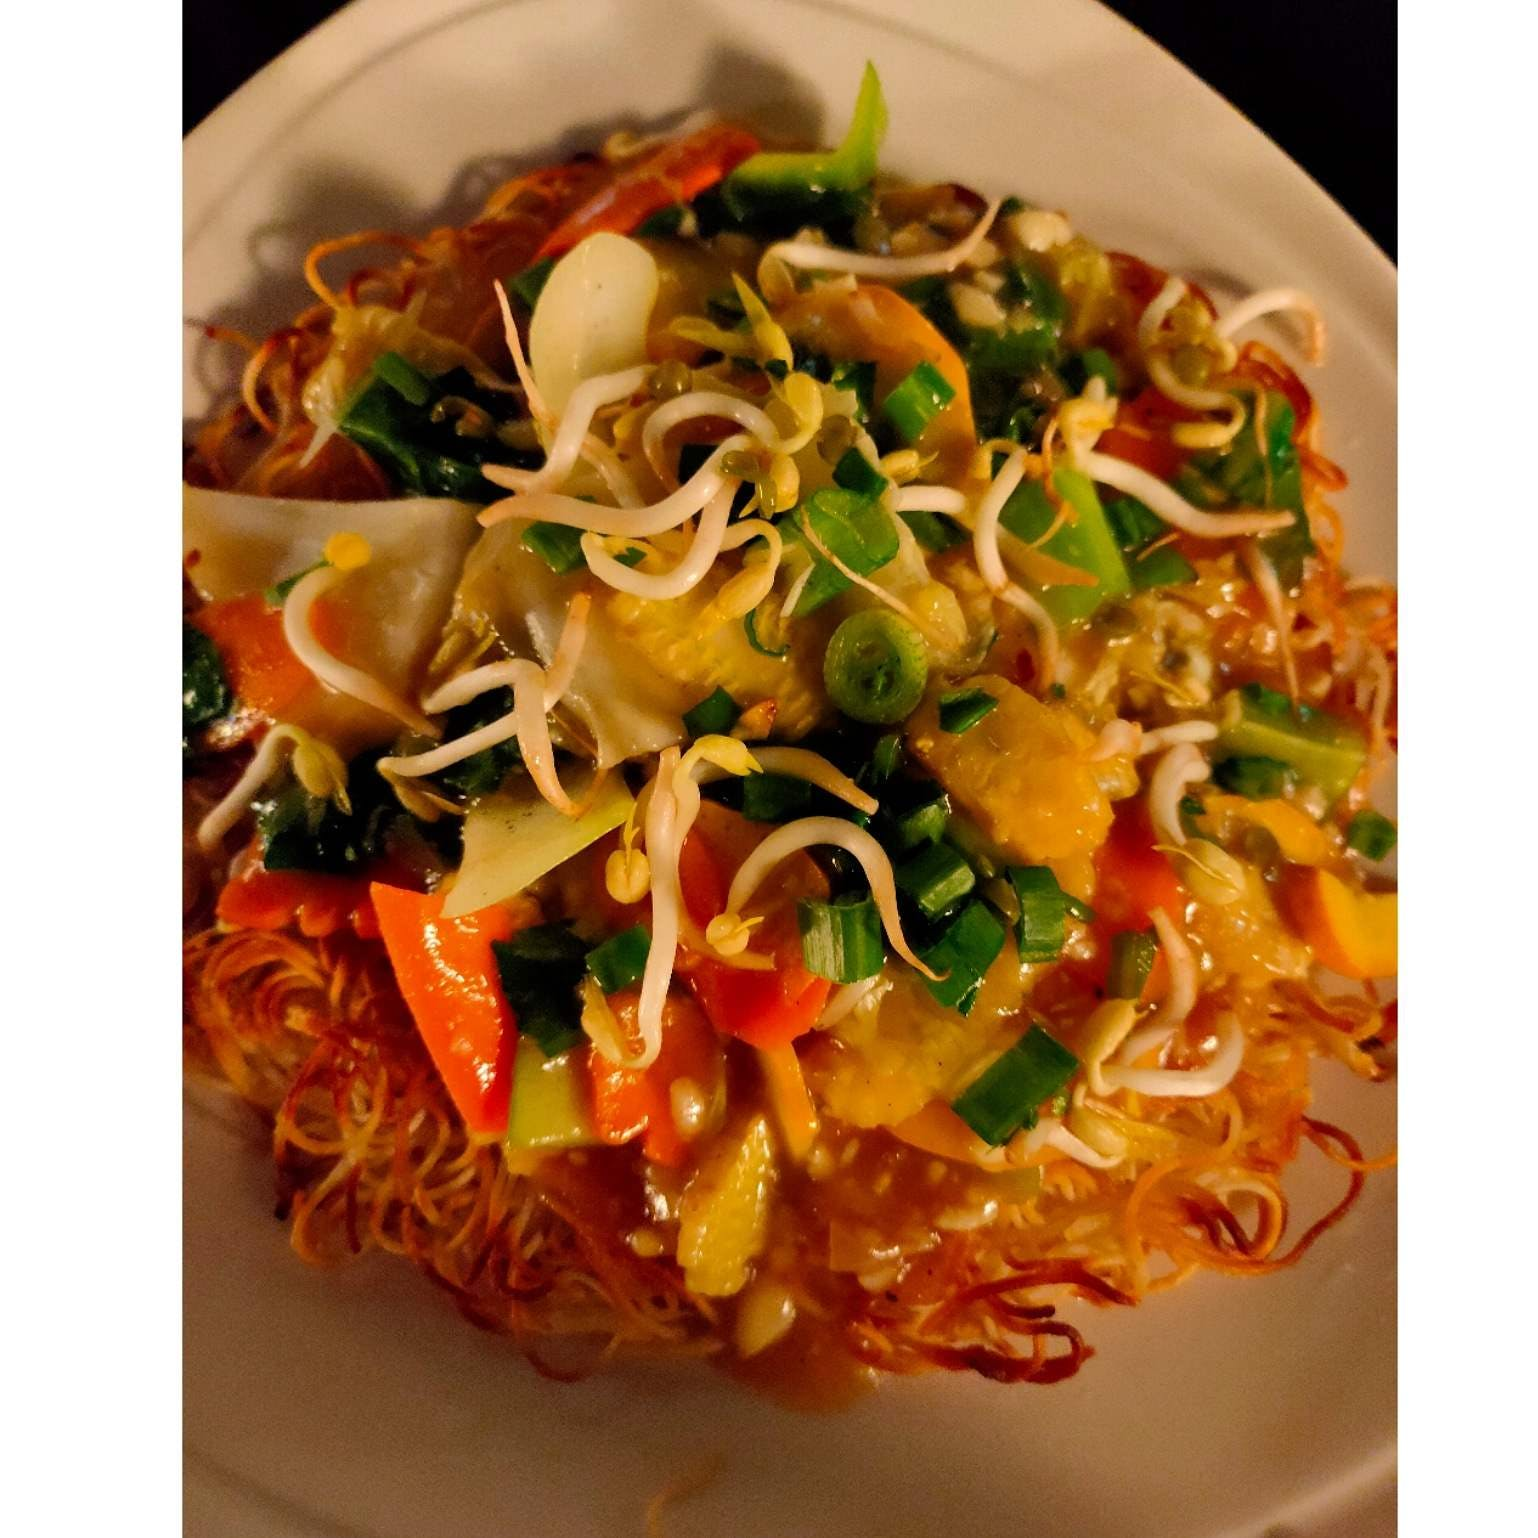 Food,Dish,Cuisine,Ingredient,Karedok,Noodle,Pancit,Chow mein,Fried noodles,Recipe